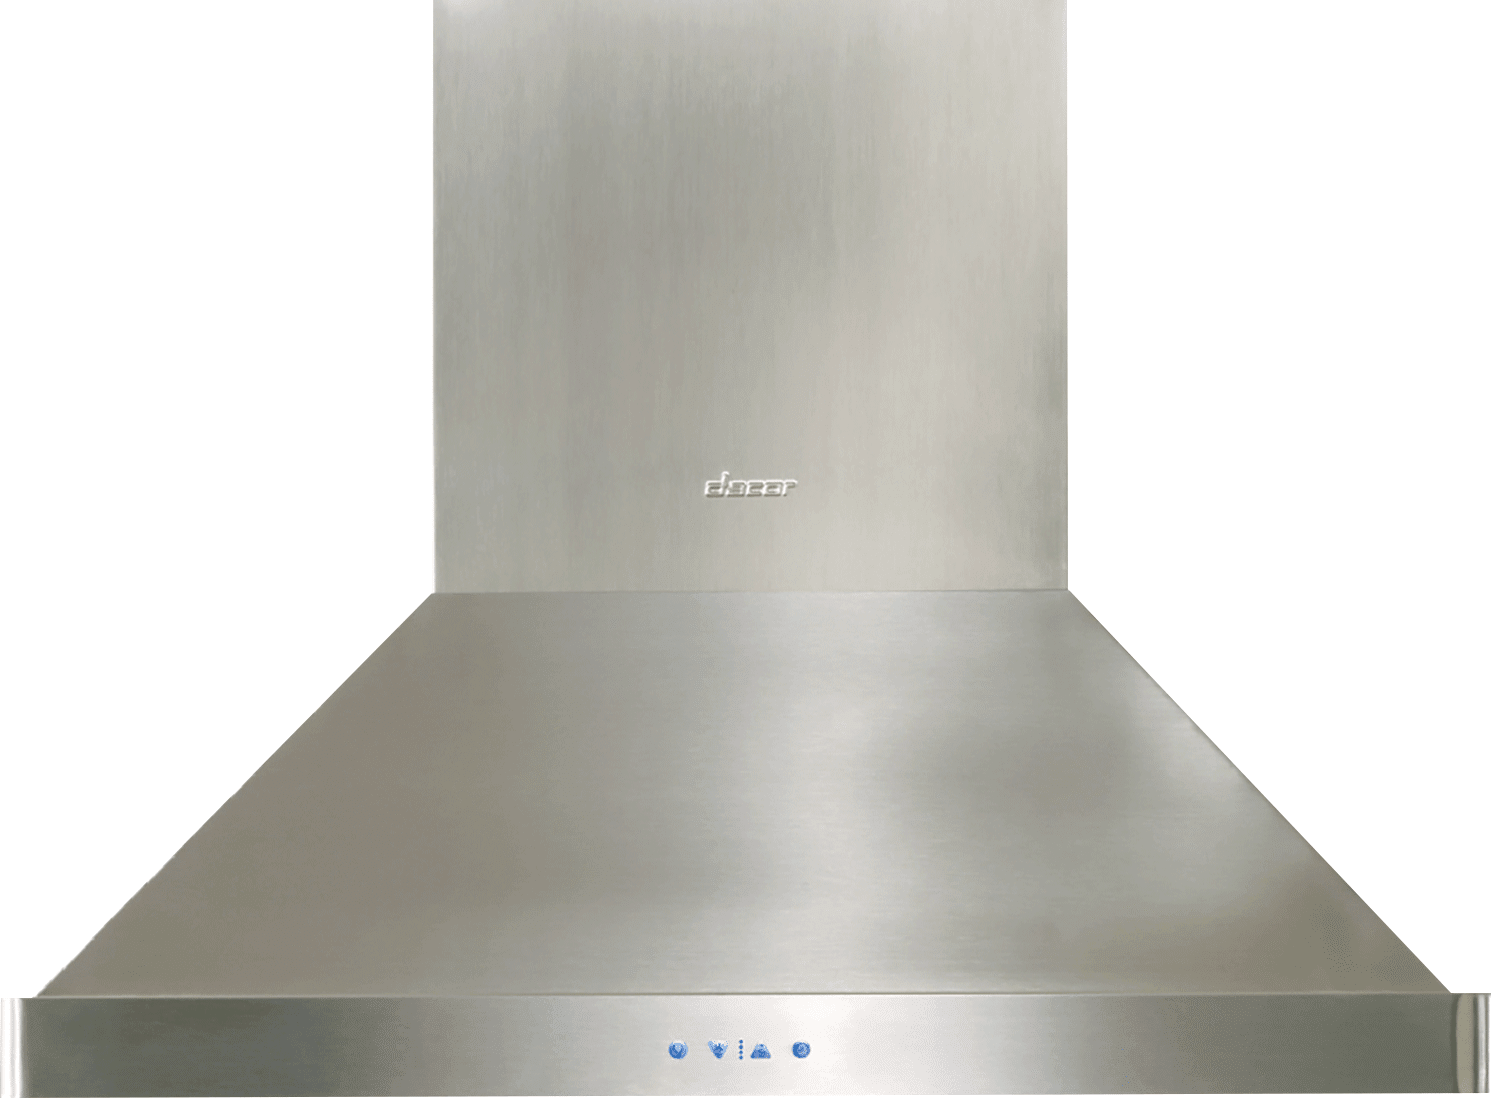 42 inch range hood. Dacor Dhi421 42 Inch Island Mount Range Hood With 1200 Cfm Internal